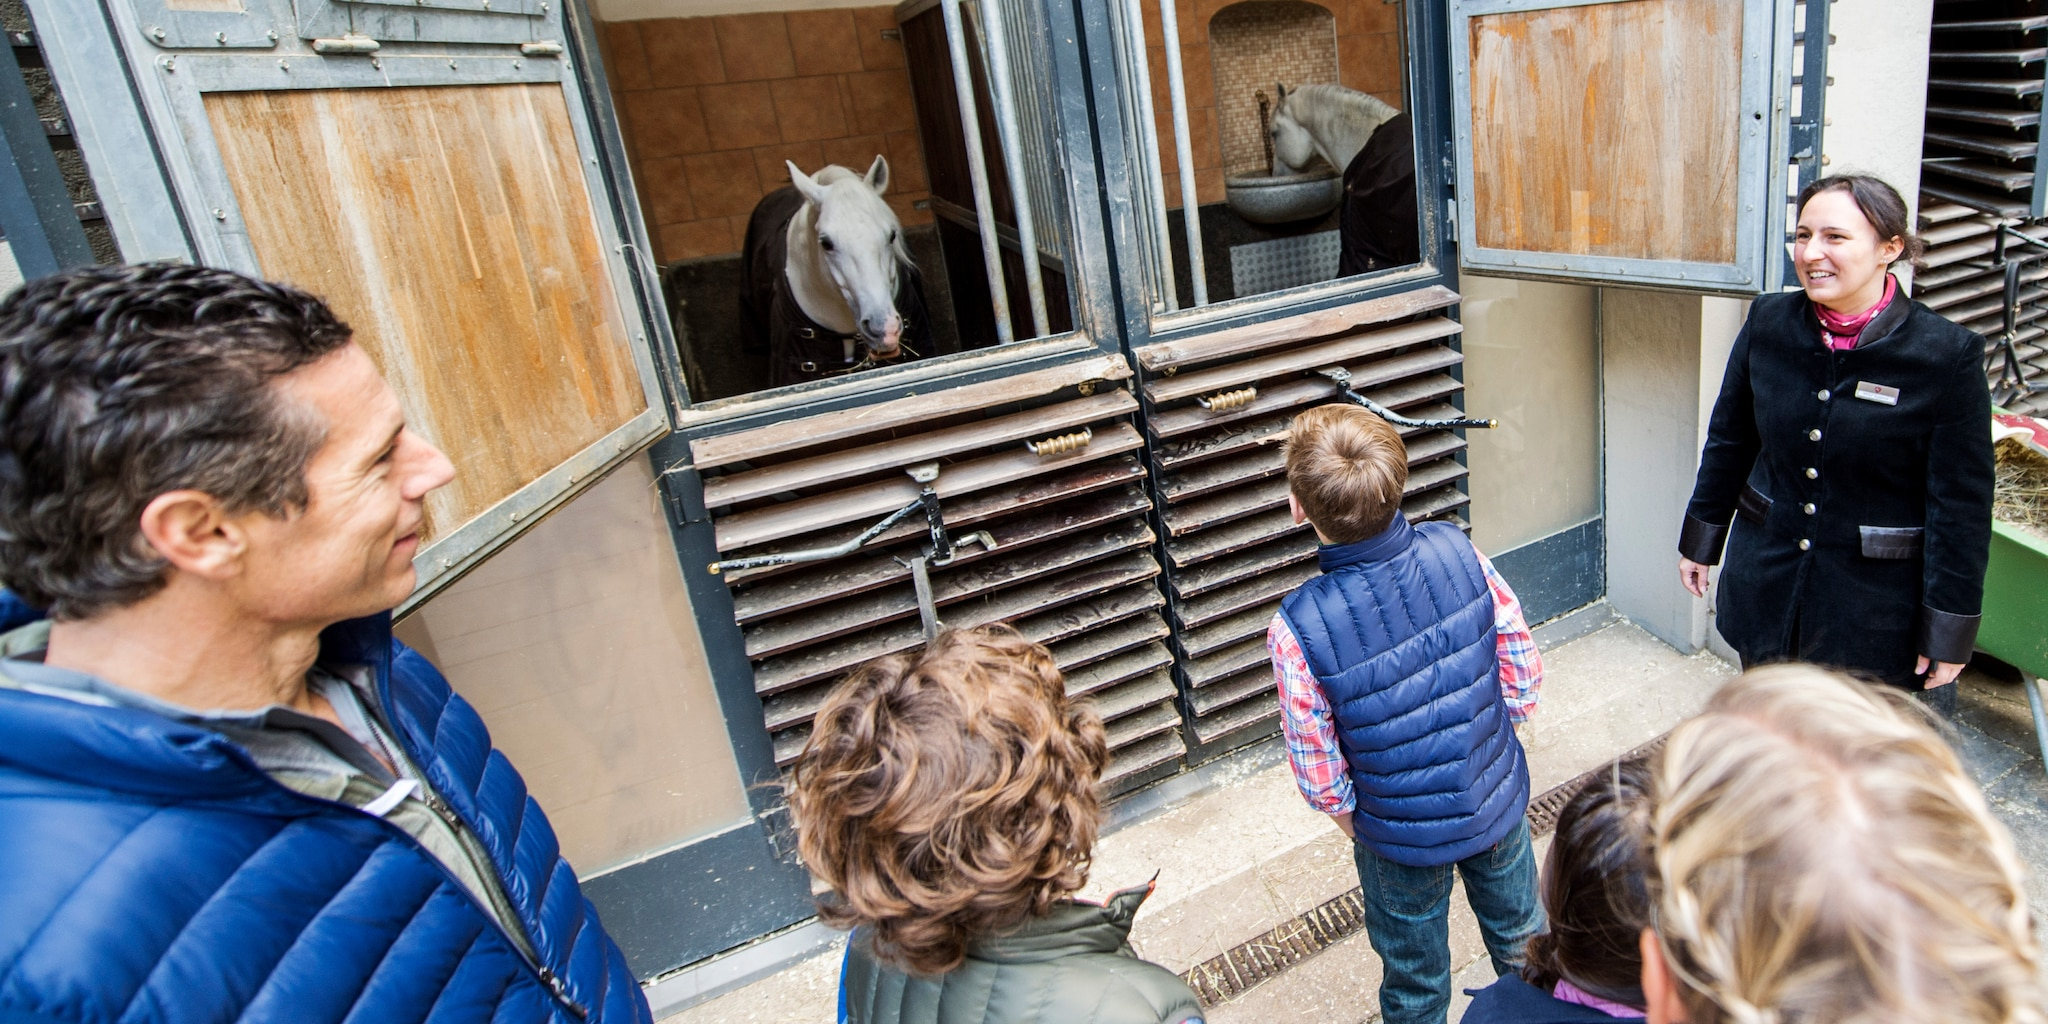 A family looks through an open stable door to see a pair of horses, one of whom is eating